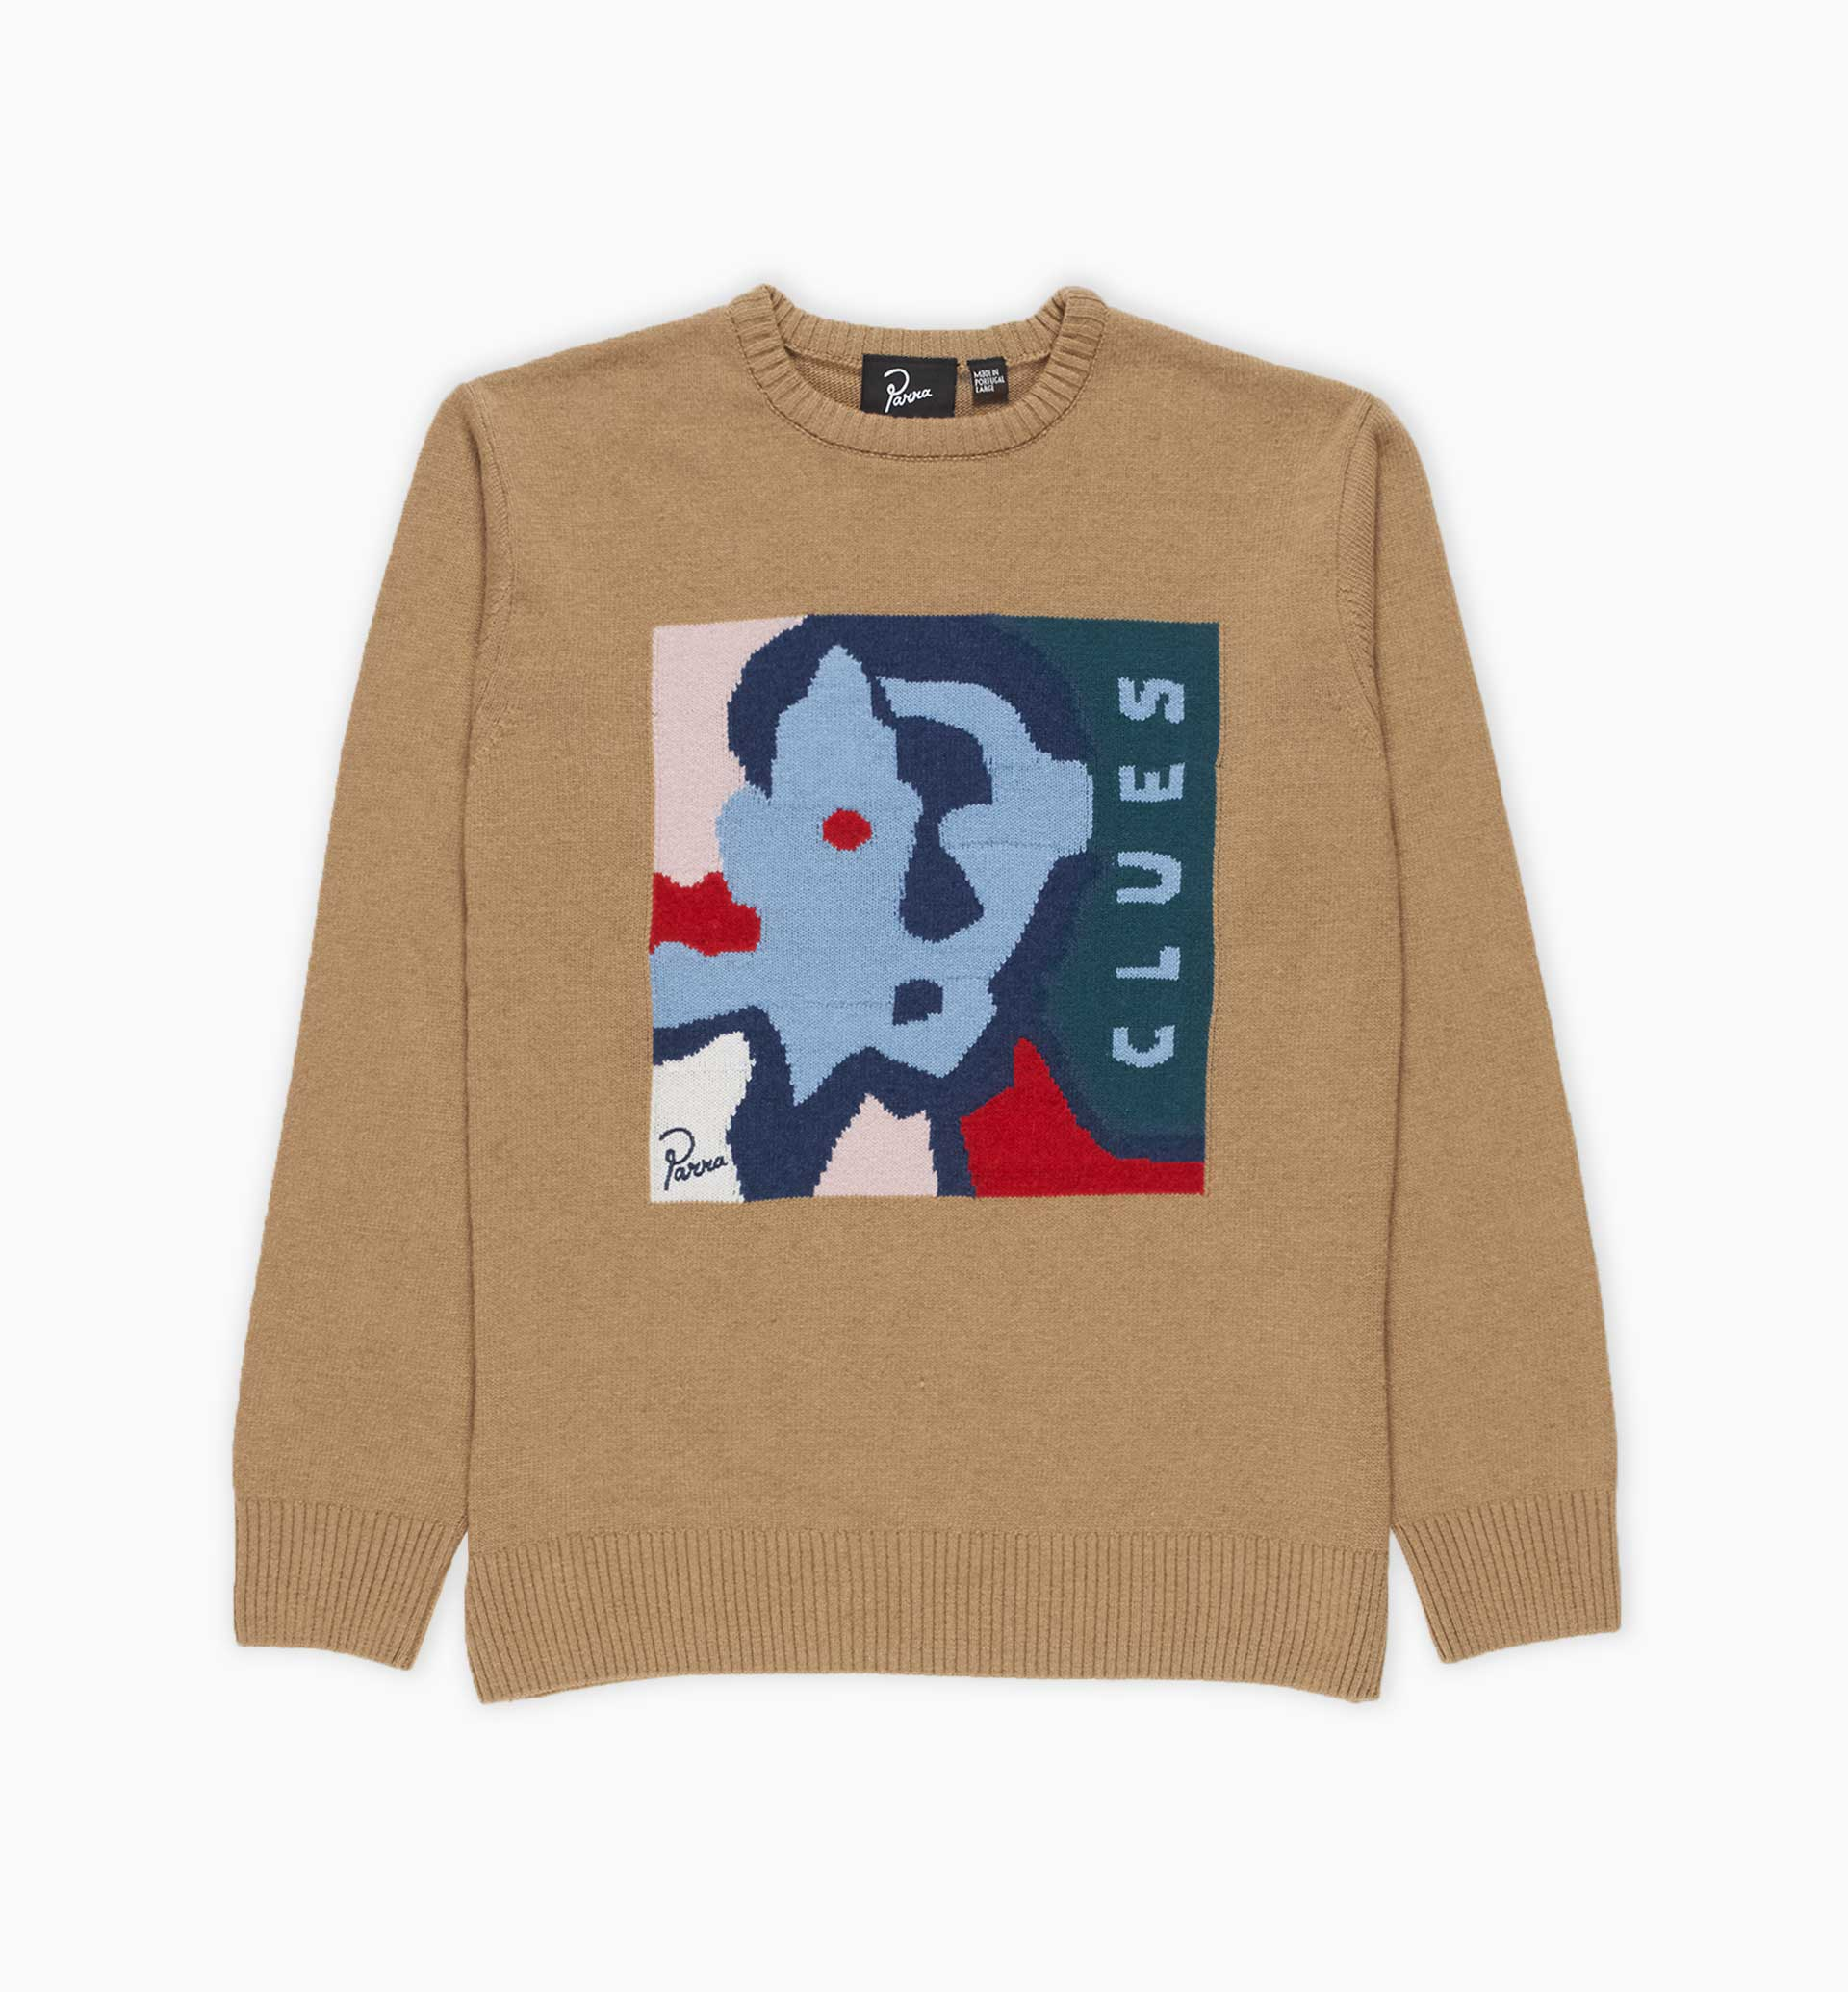 Parra - clues knitted pullover